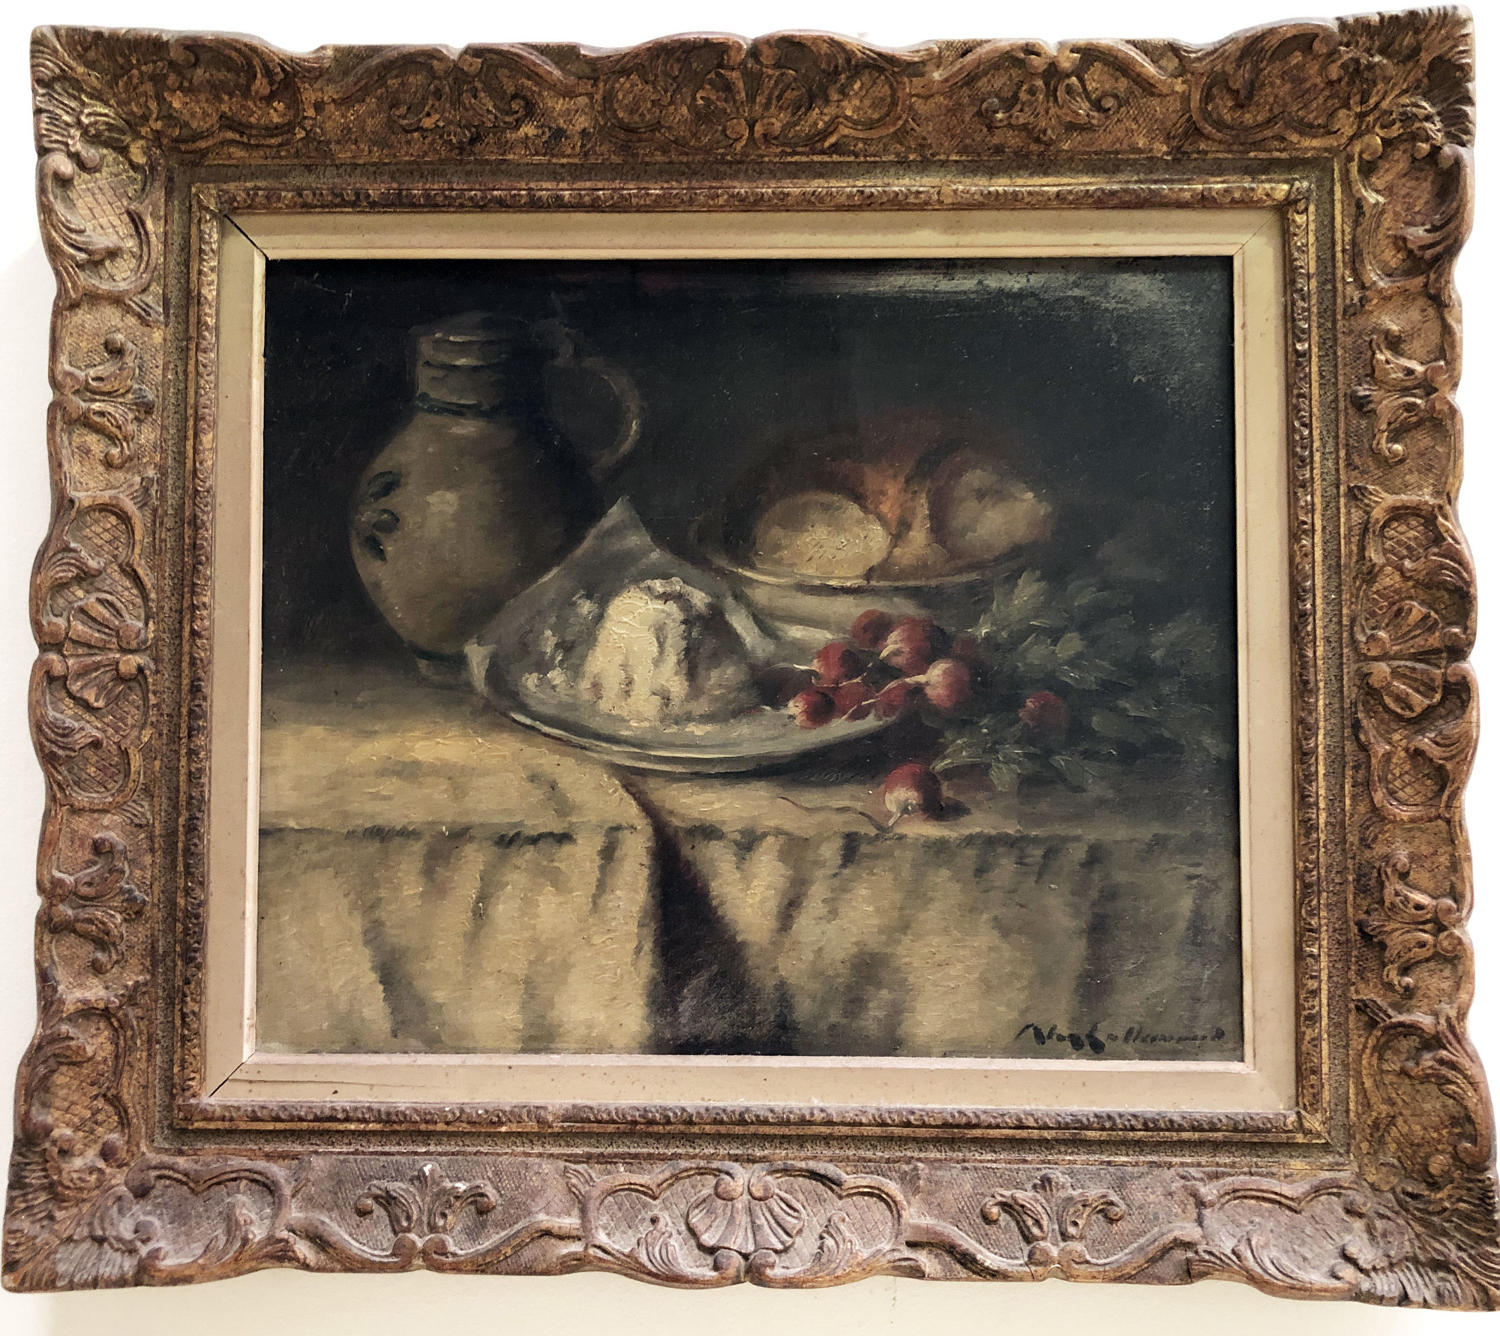 19th c French Still Life - oil on canvas with Radishes